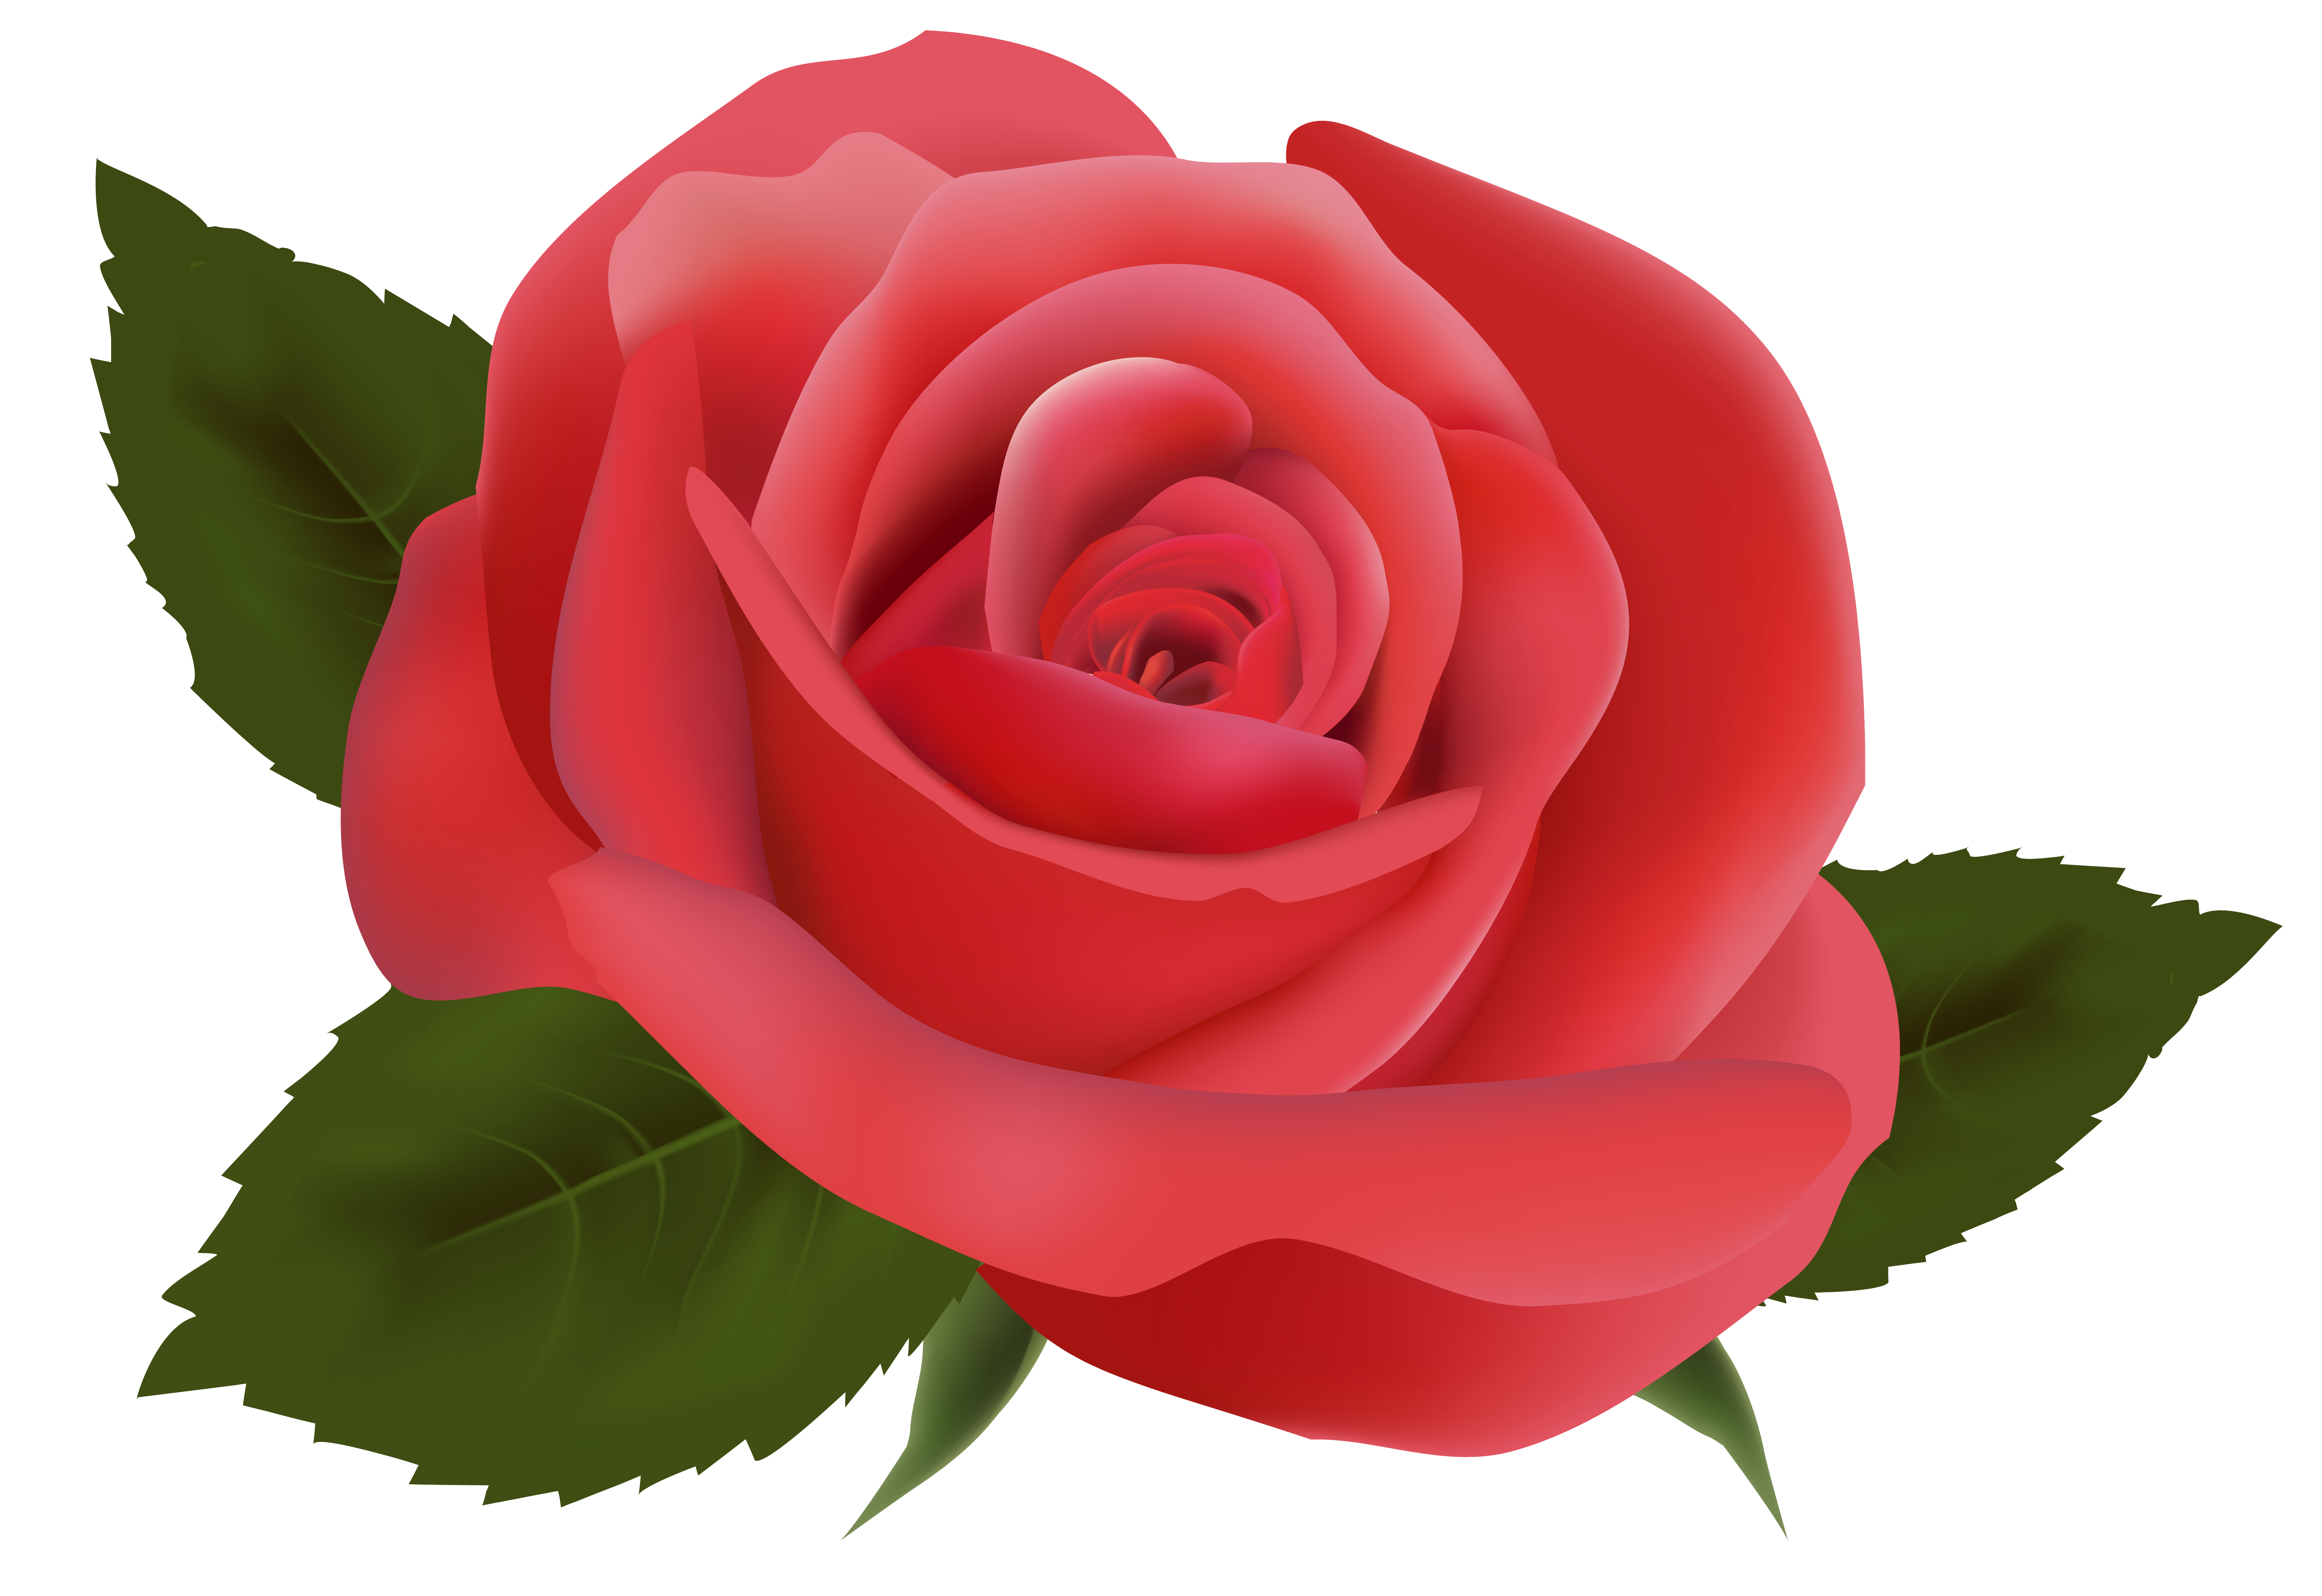 Rose clipart aesthetic. Red png image deseos